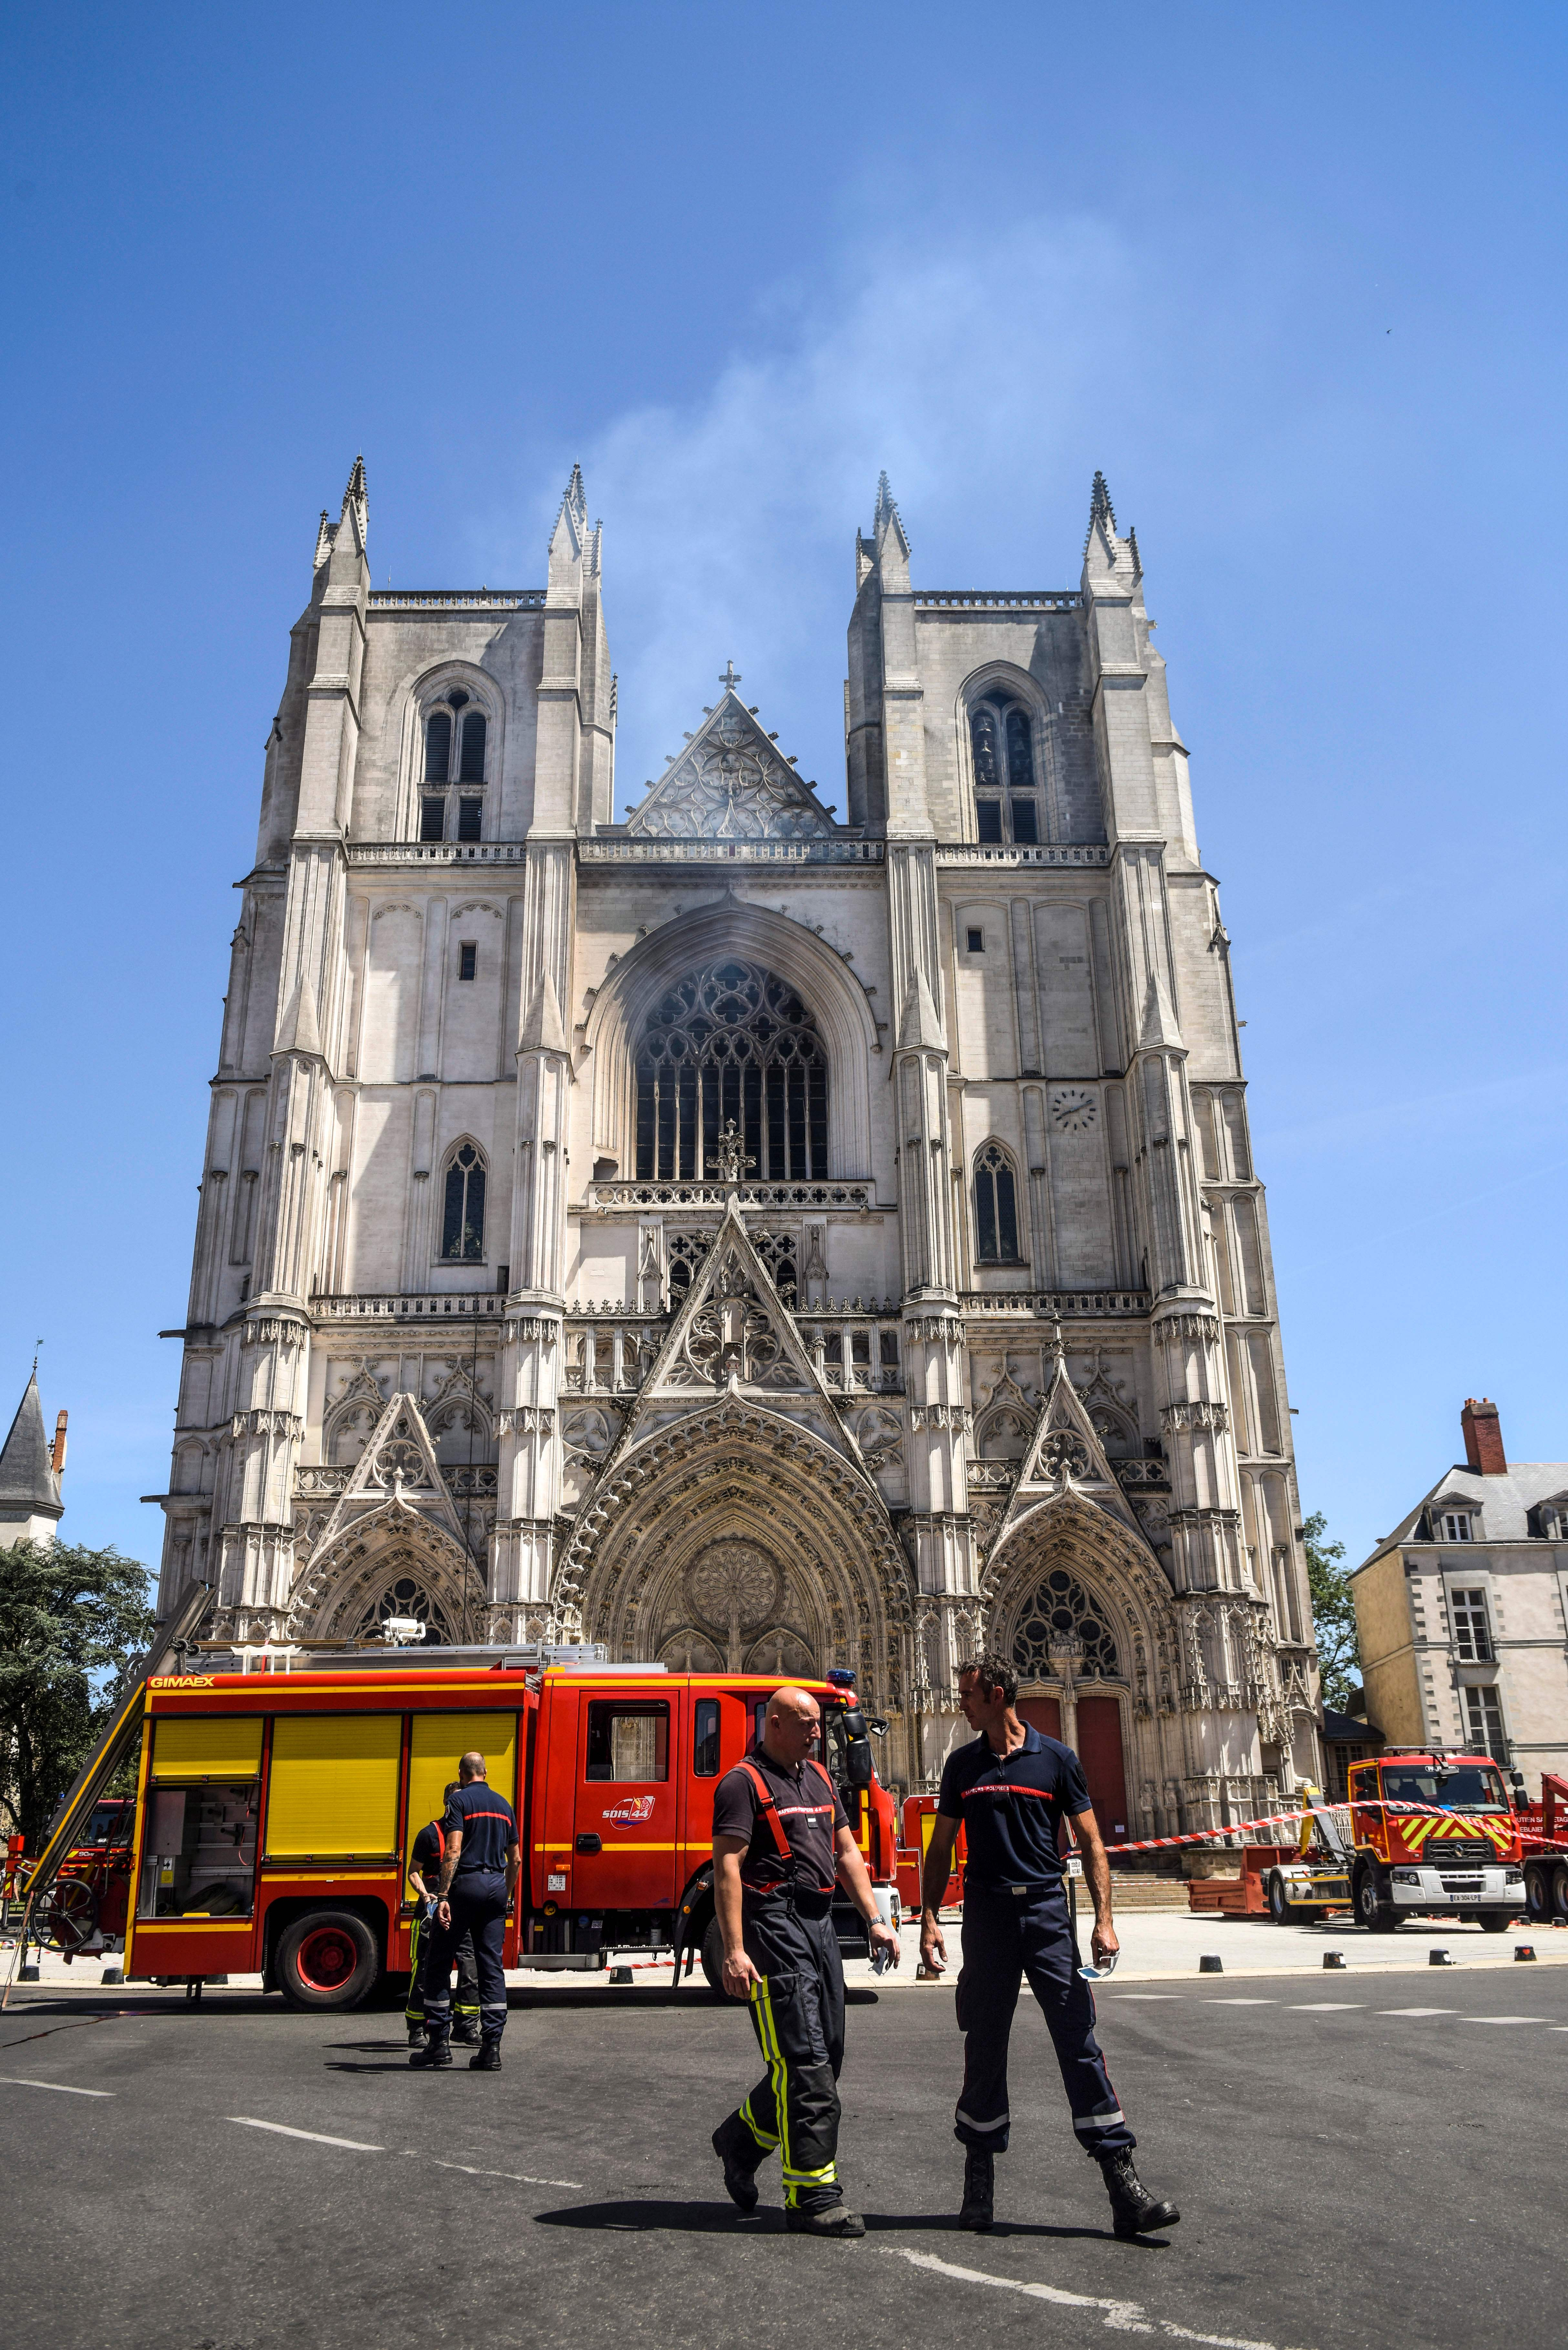 Firefighters are at work at the Cathedral of St Peter and St Paul in Nantes on July 18, 2020 after a fire ravaged parts of the gothic building before being brought under control, sparking an arson investigation and leaving Catholic officials lamenting the loss of priceless historical artefacts. (Photo by SEBASTIEN SALOM-GOMIS/AFP via Getty Images)